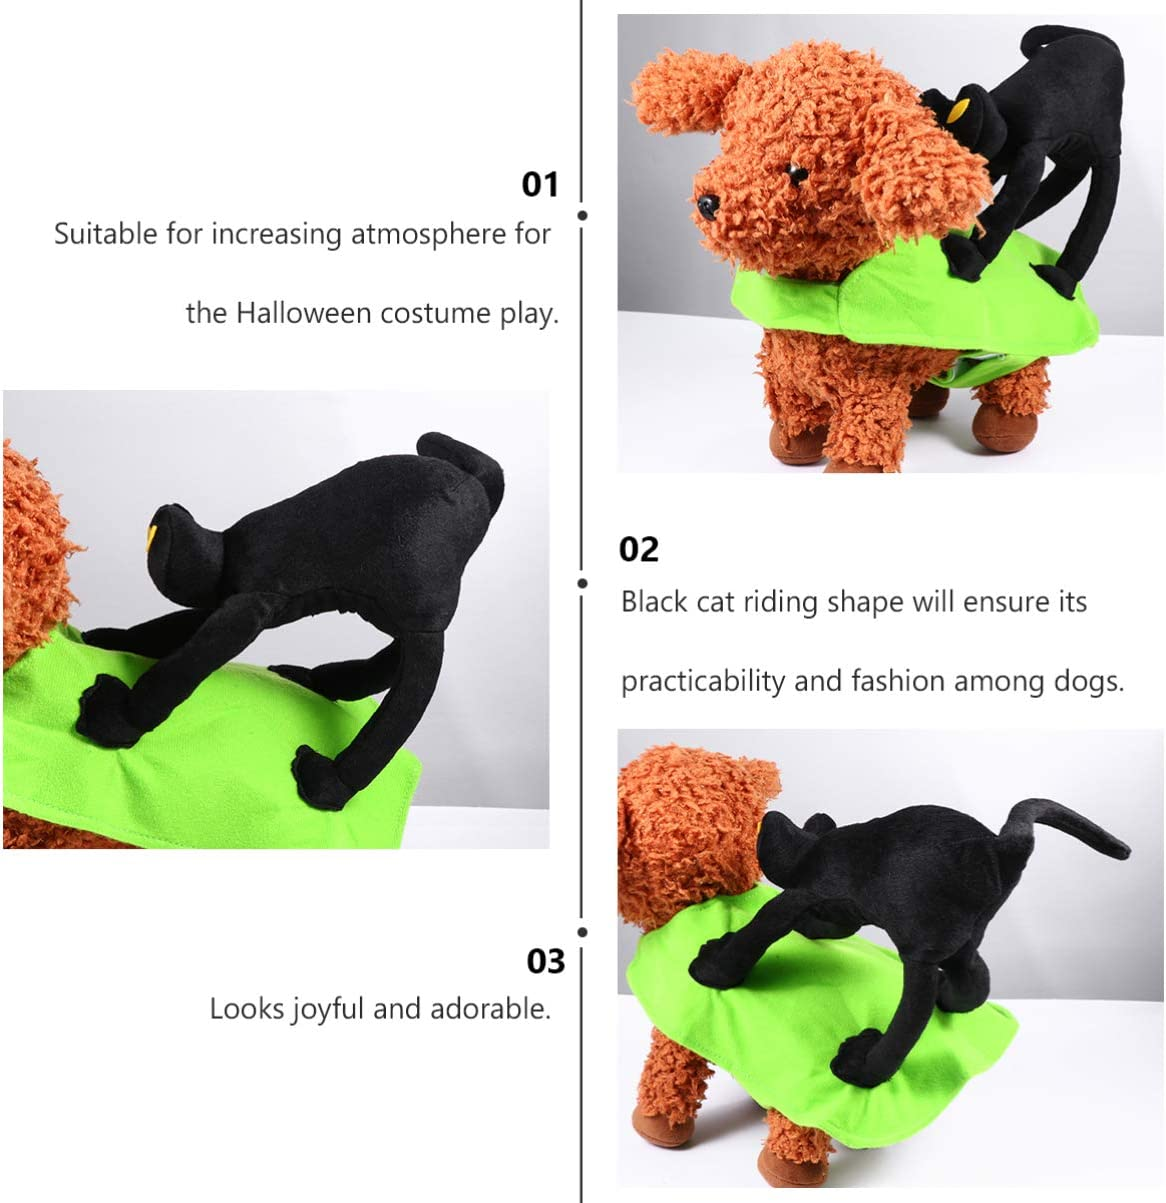 POPETPOP Pet Riding Costume Dog Puppy Black Cat Rider Costume Halloween Cosplay Dress up Costume for Halloween Party Size S